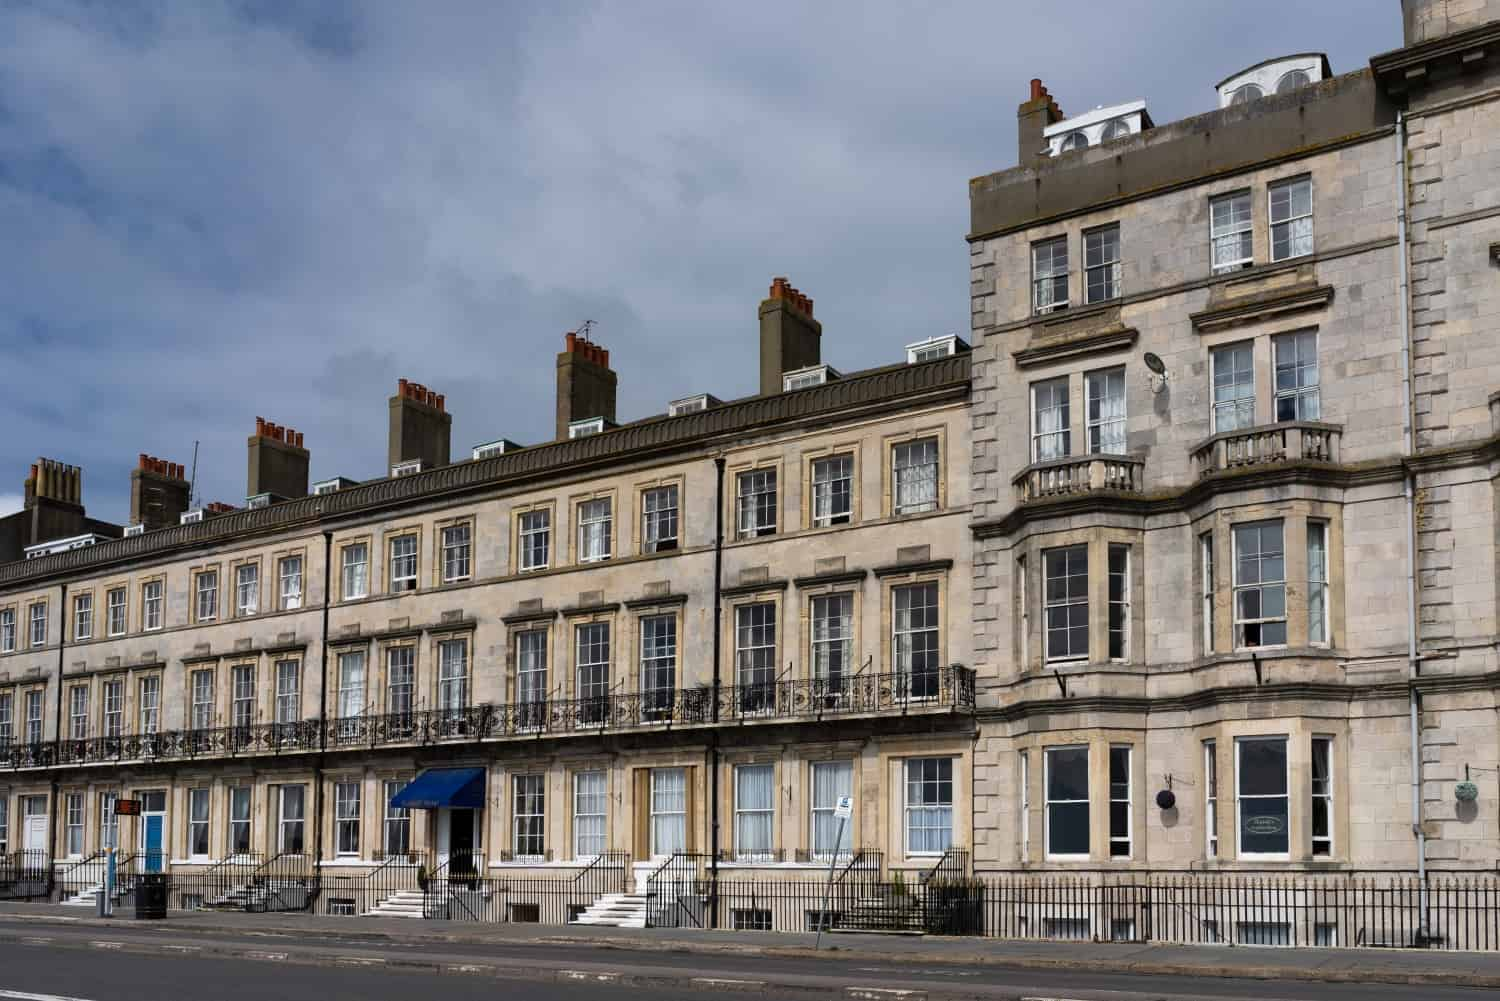 Experiencing Daish's Holidays - The Russell Hotel, Weymouth